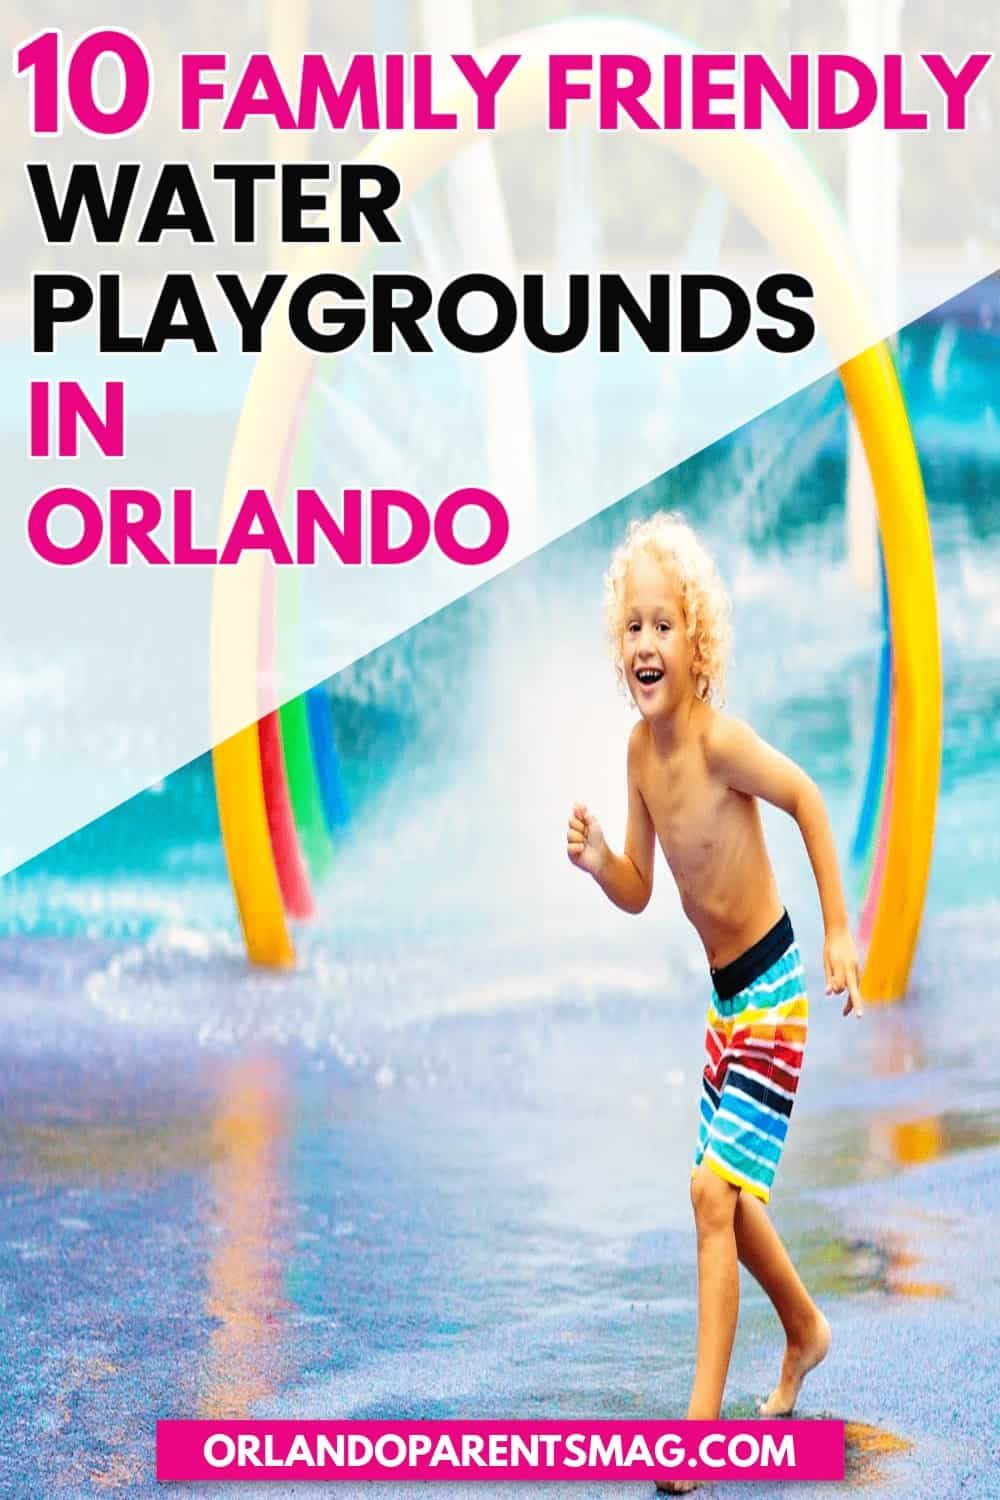 water playgrounds in orlando